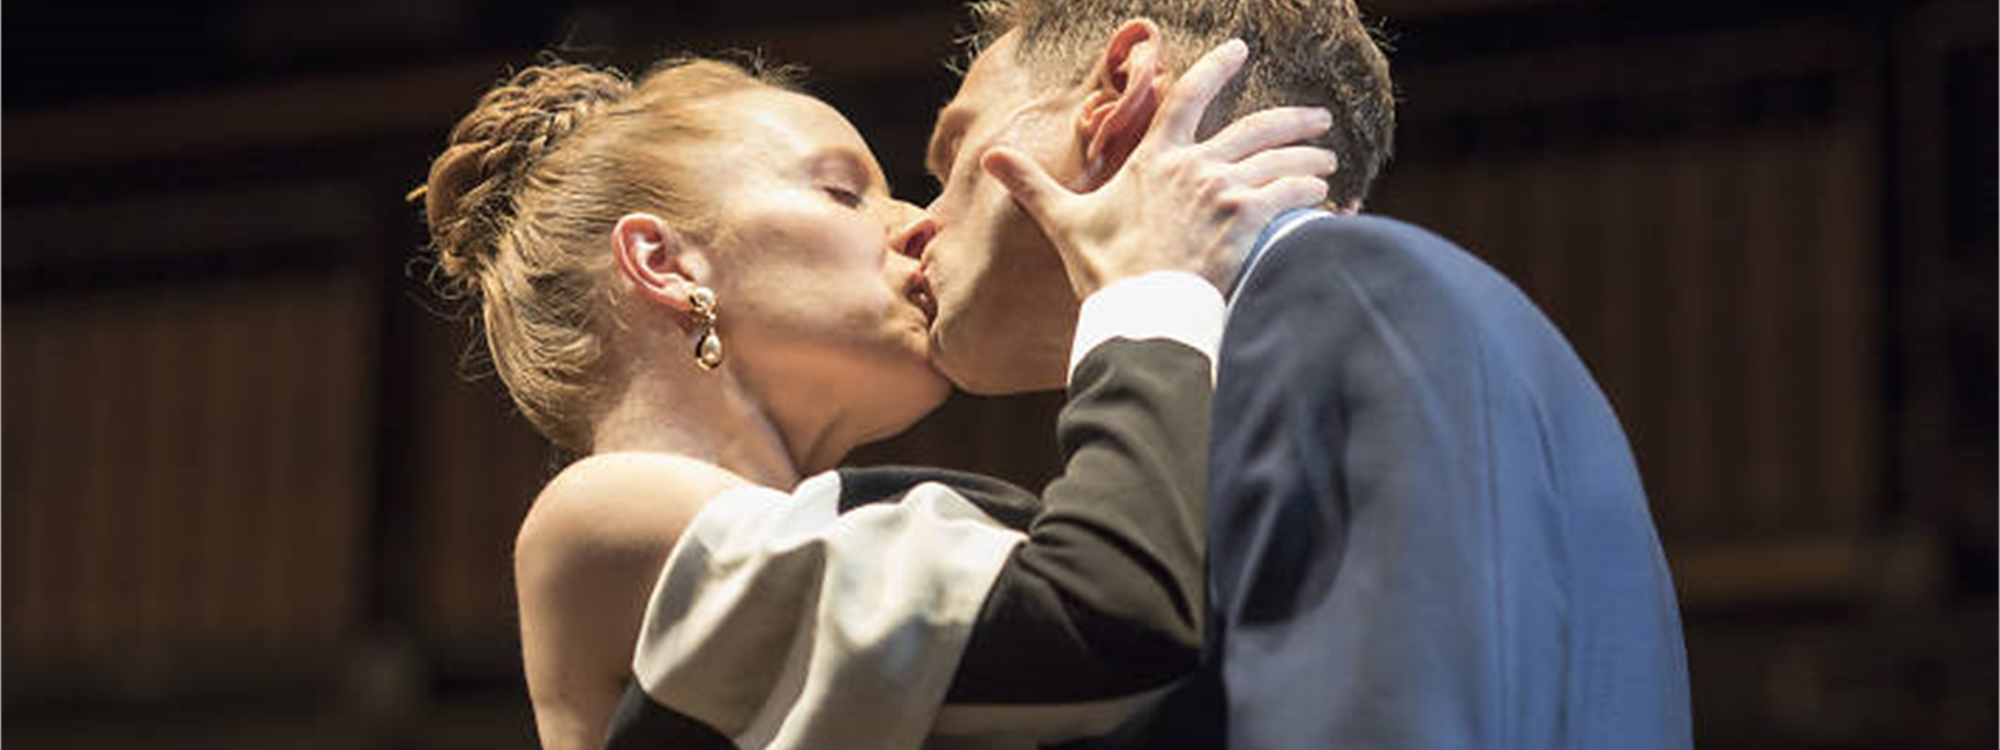 RSC's Titus Andronicus at the Barbican Centre